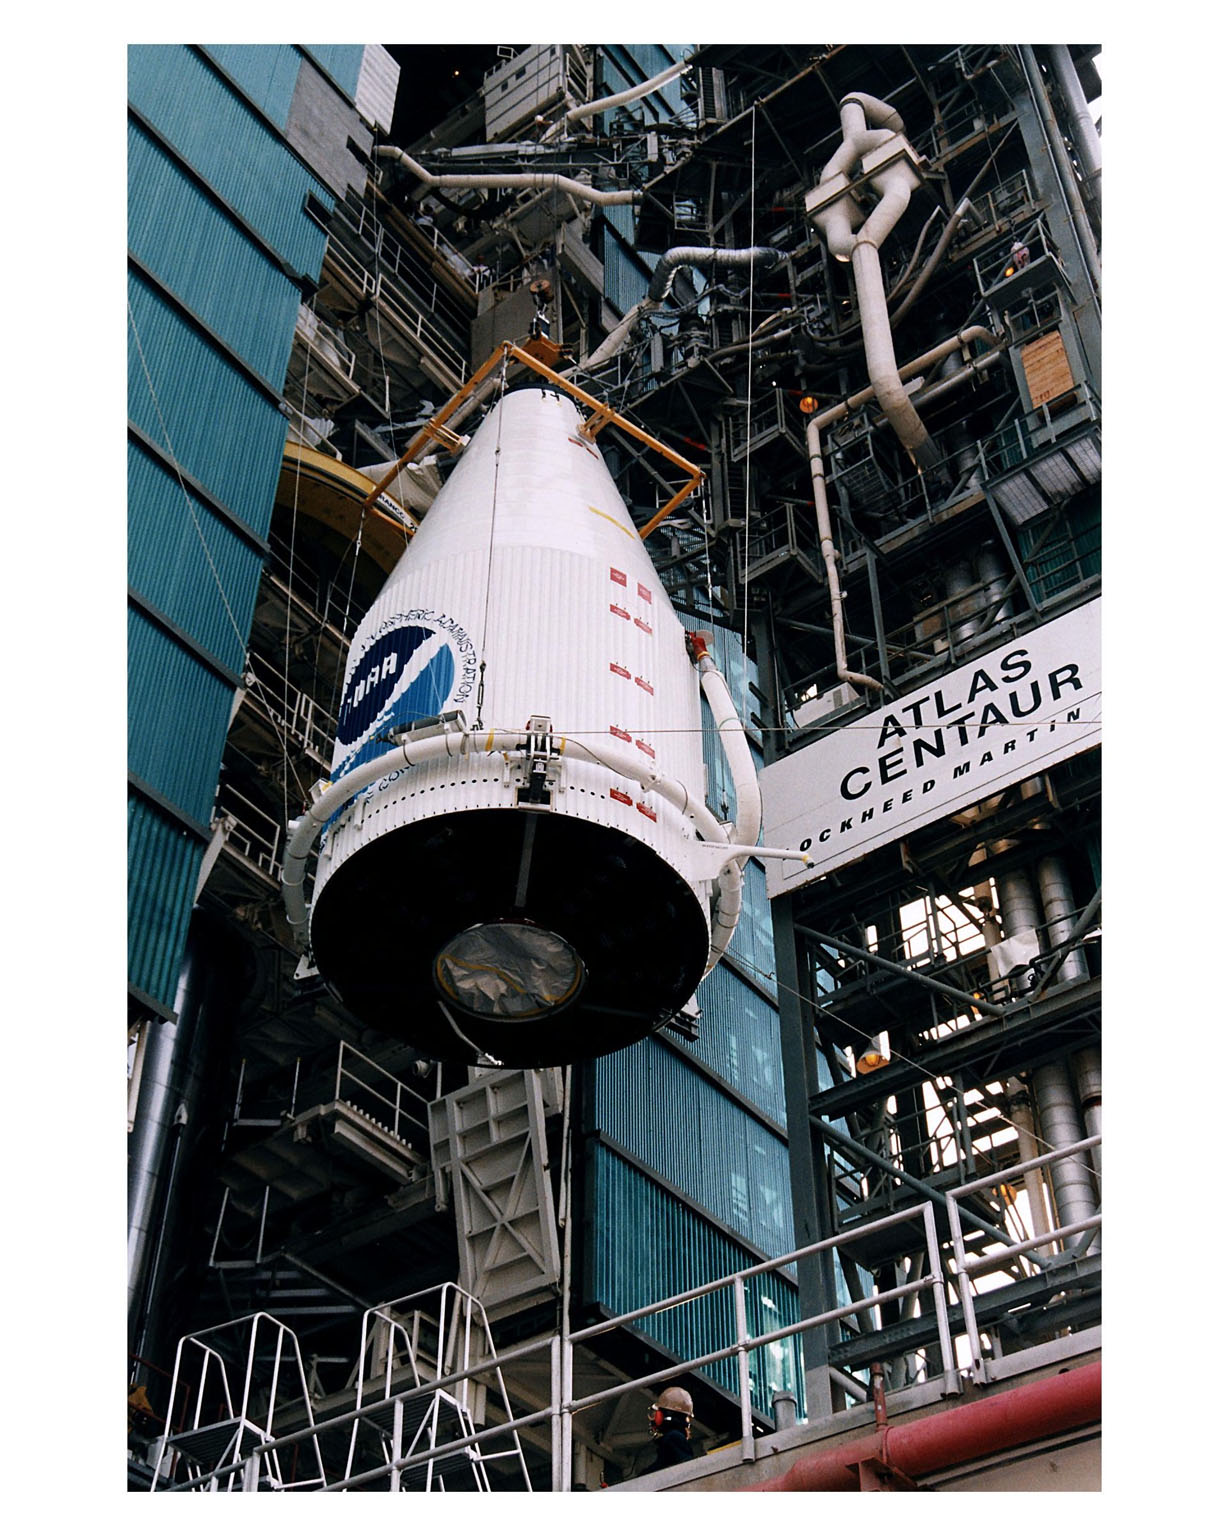 The Atlas 1 payload fairing with the encapsulated GOES-K advanced weather satellite is being lifted into position for mating to the Lockheed Martin Atlas 1 expendable launch vehicle (AC-79) at Launch Complex 36, Pad B, Cape Canaveral Air Station. GOES-K will be the third spacecraft to be launched in the advanced series of Geostationary Operational Environmental Satellites (GOES). The GOES satellites are owned and operated by the National Oceanic and Atmospheric Administration (NOAA); NASA manages the design, development and launch of the spacecraft. GOES-K is targeted for an April 24 launch [ http://www-pao.ksc.nasa.gov/kscpao/release/1997/63-97.htm ] during a launch window which extends from 1:50-3:09 a.m. EDT. Once in orbit, GOES-K will become GOES-10, joining GOES-8 and GOES-9 in space